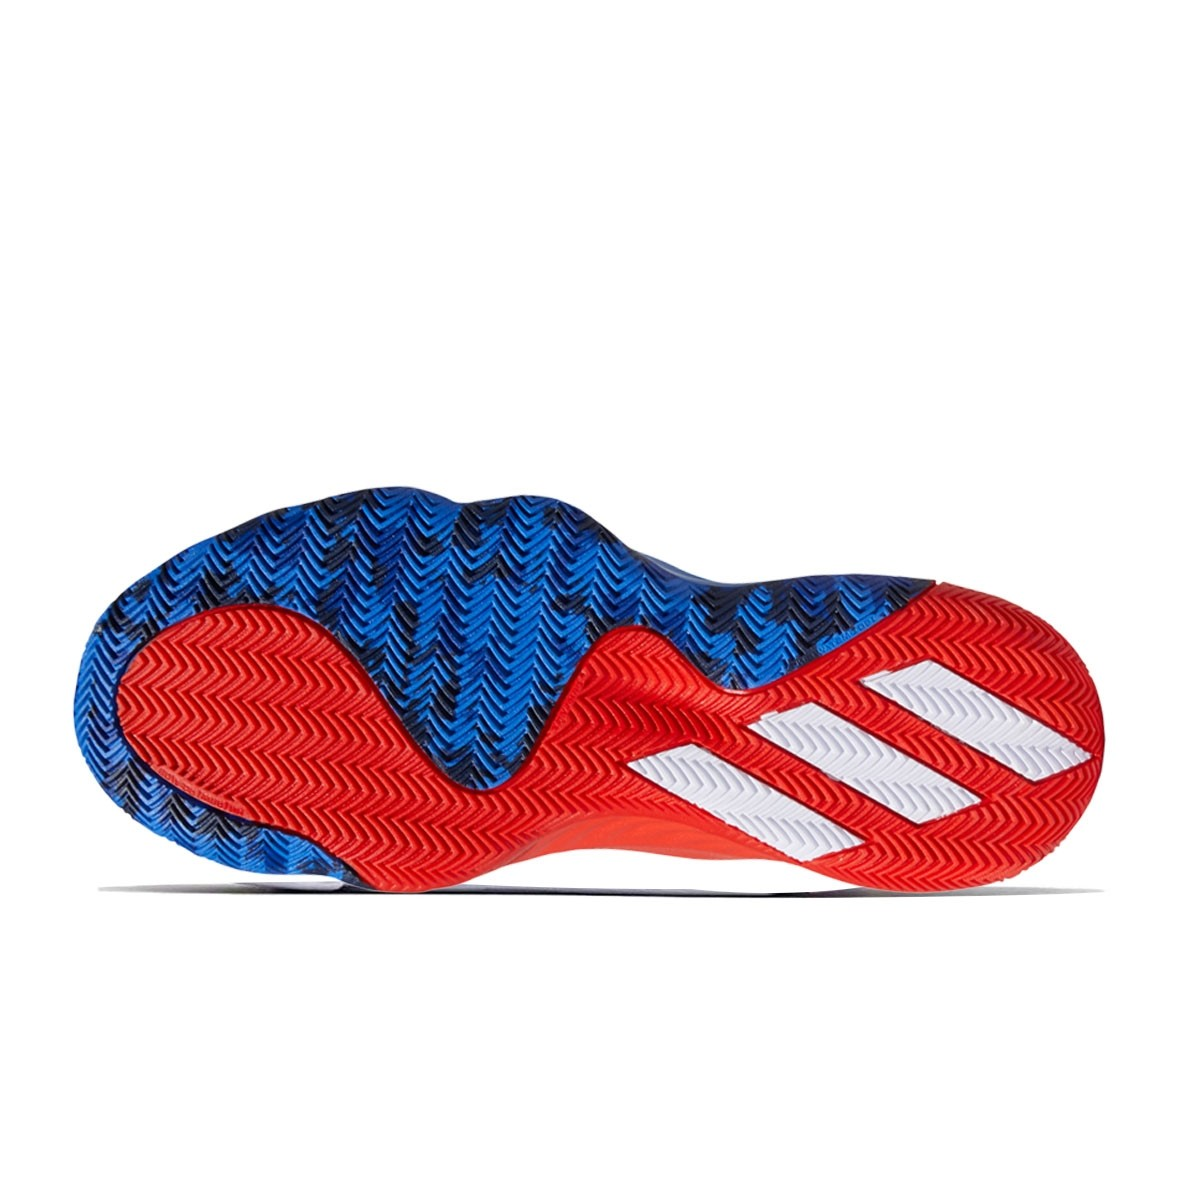 ADIDAS D.O.N Issue 1 JR 'Spider Man'